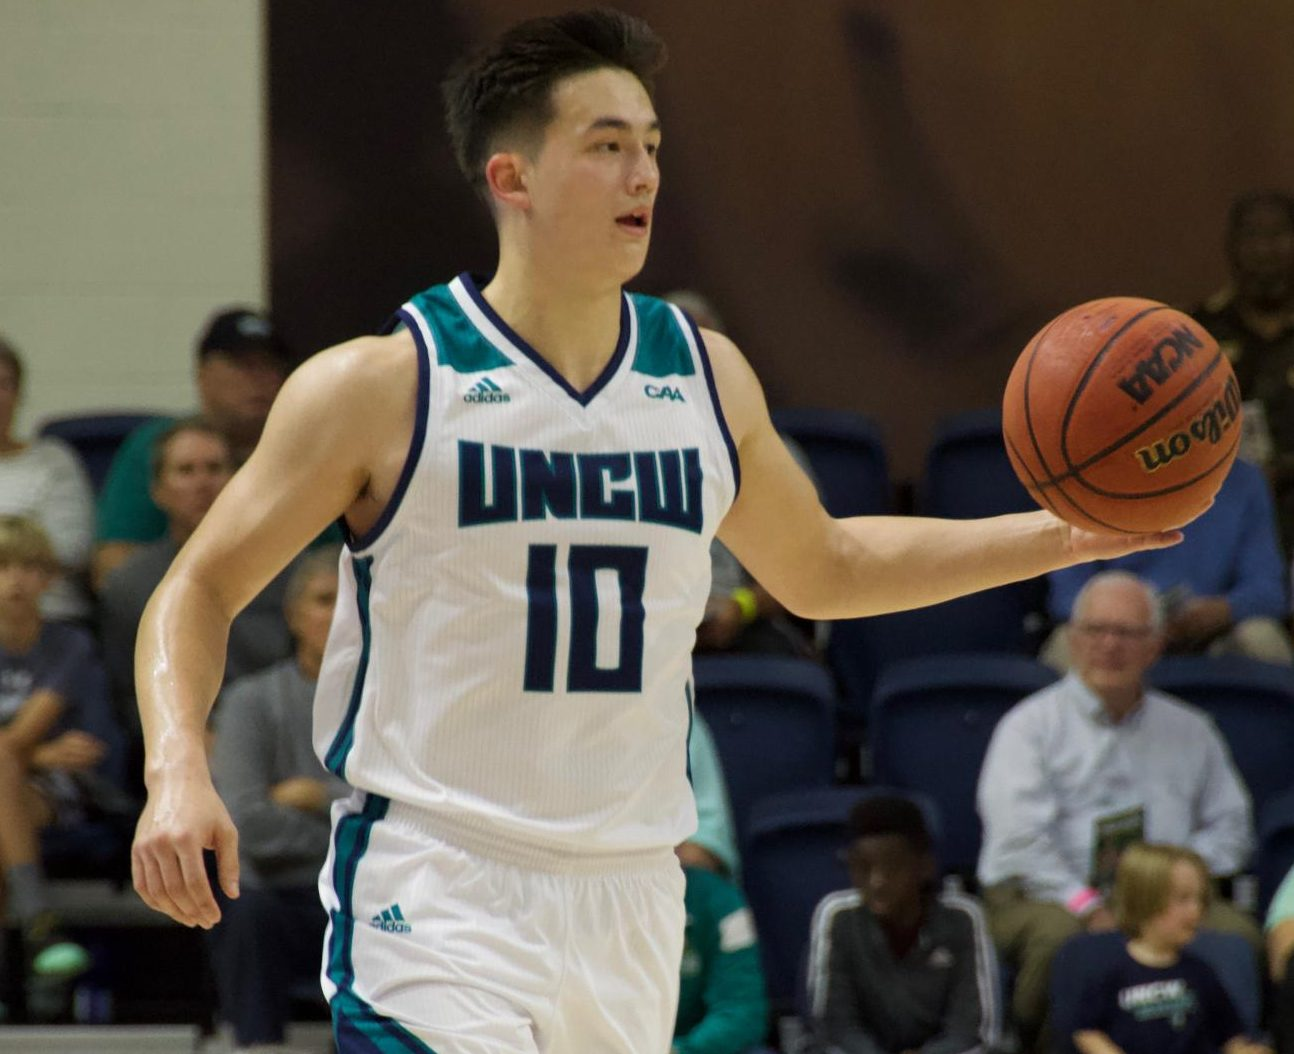 Kai Toews (10) dribbles up court during UNCW's Tuesday night game v.s. UNC Greensboro